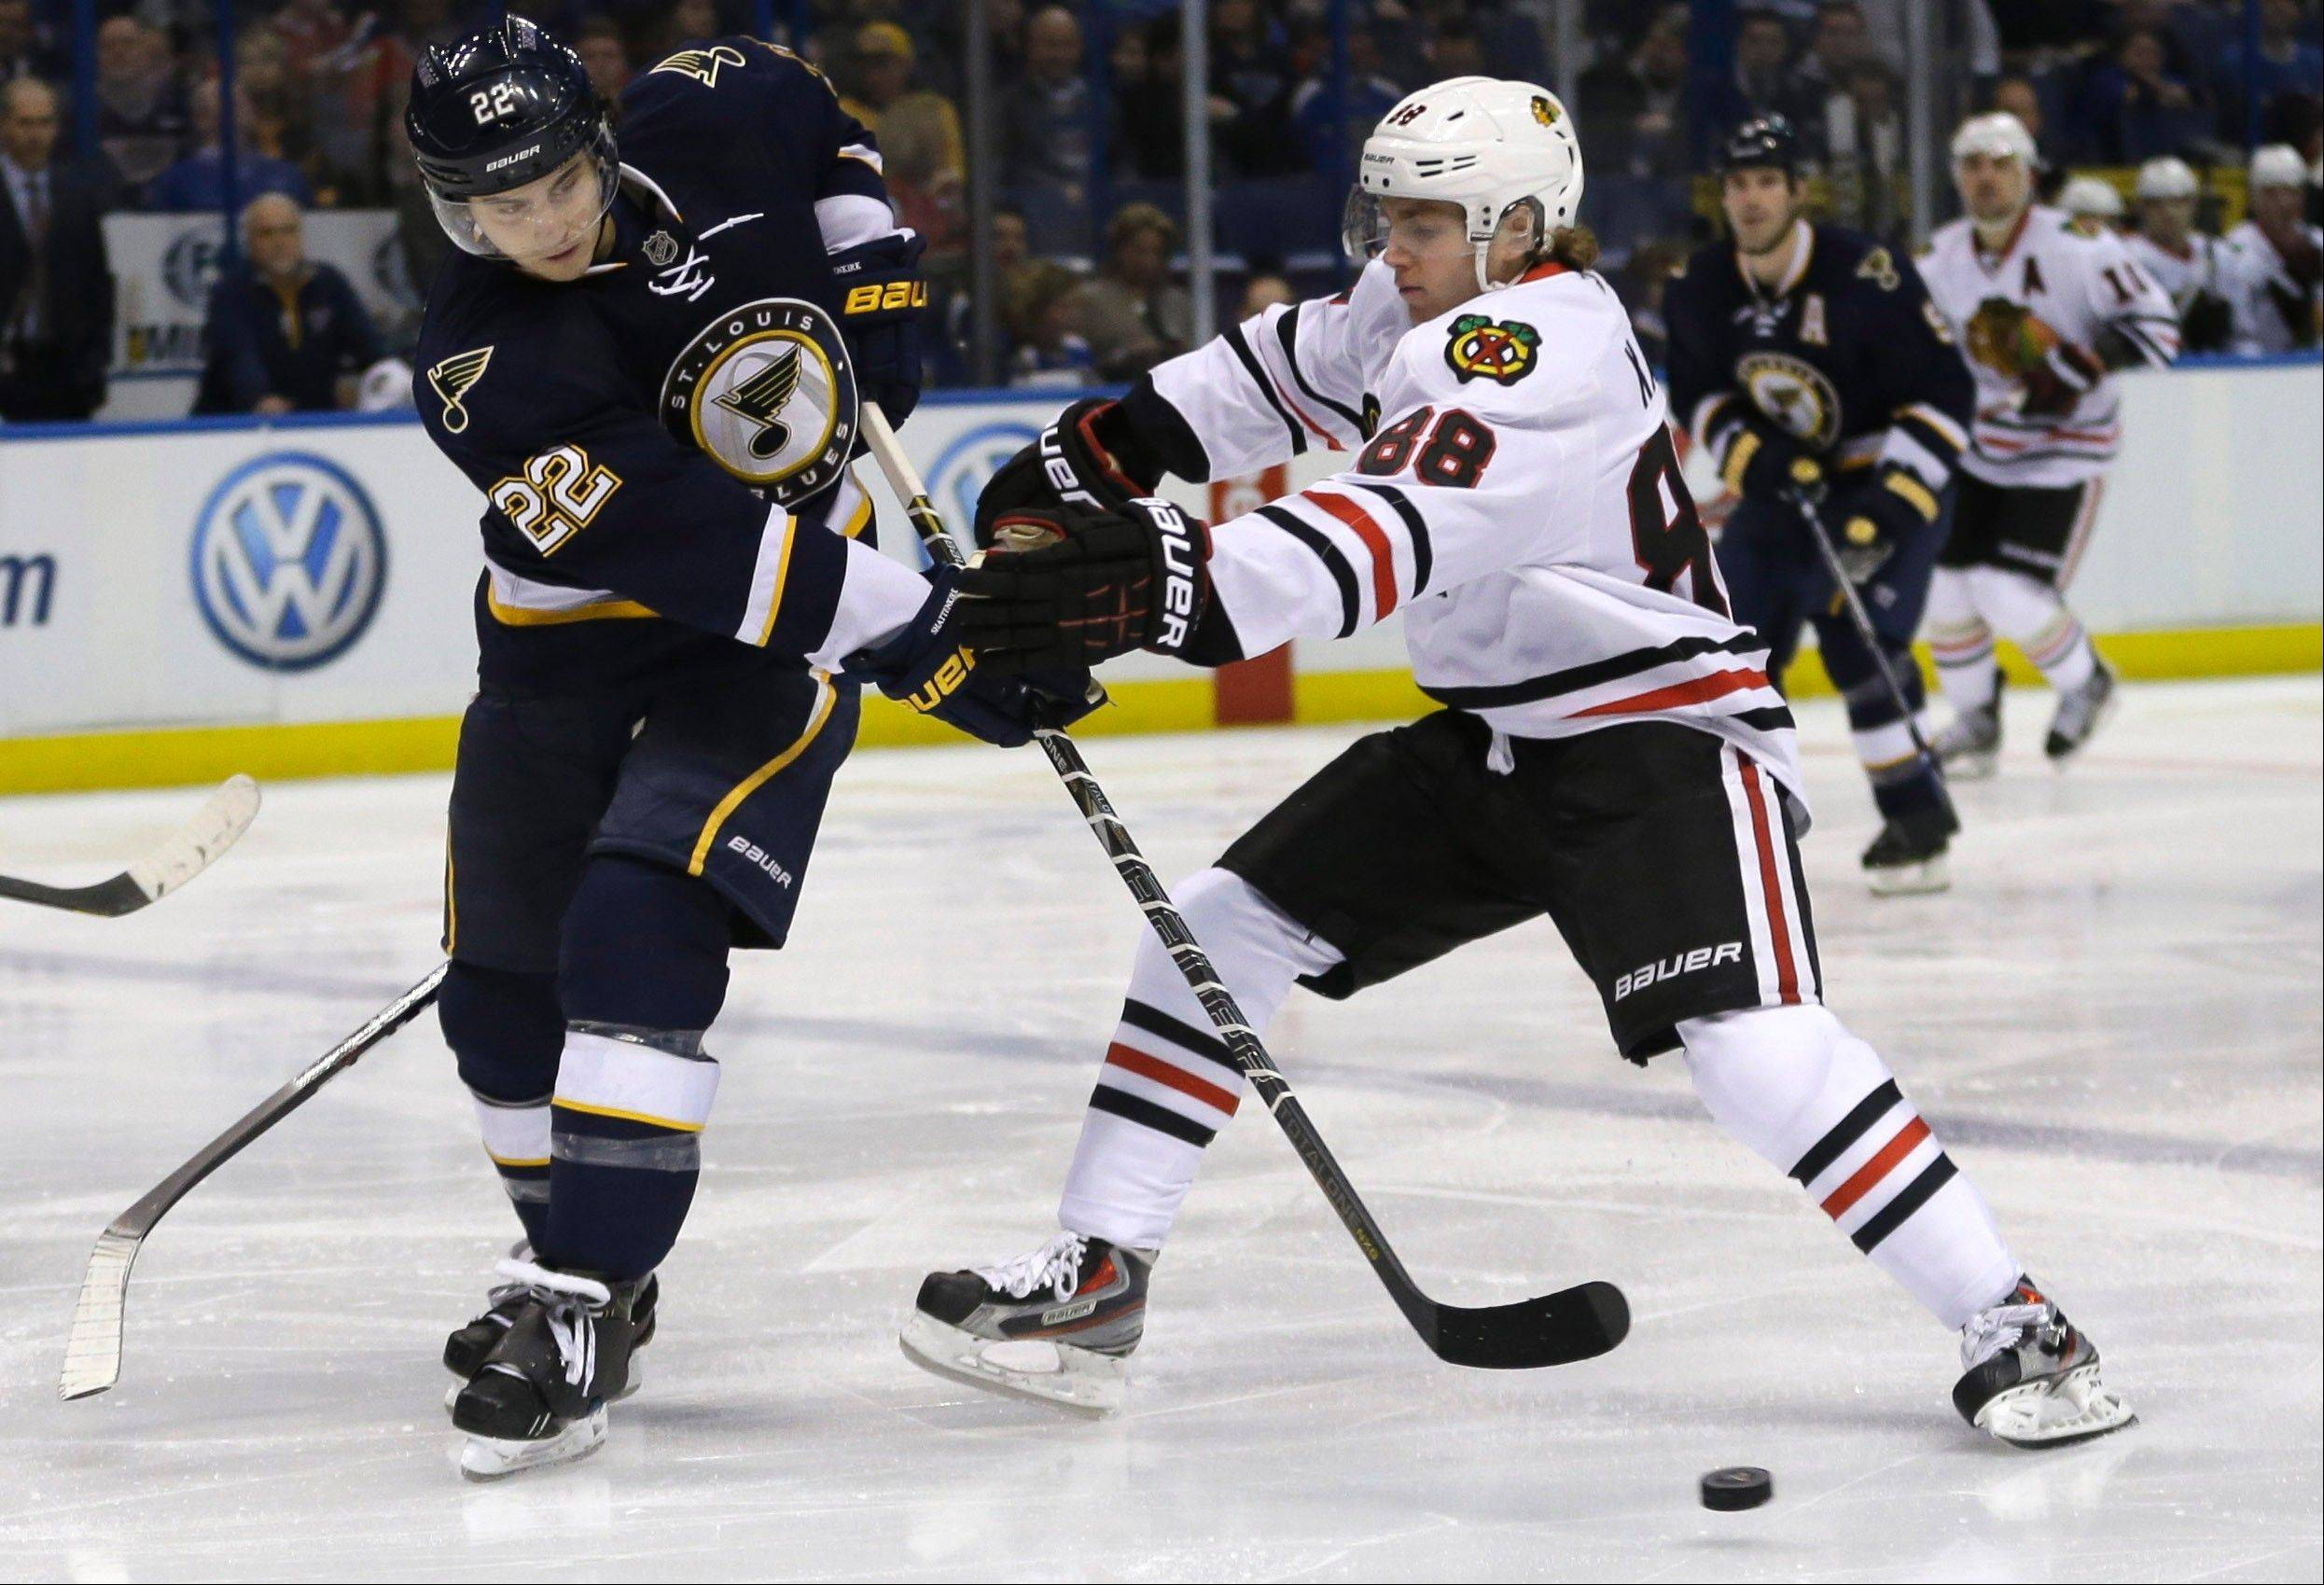 "When the St. Louis Blues battle the Blackhawks and Patrick Kane on the Scottrade Center ice this season, the Blues don't want to see many Blackhawks fans in the stands. They've blocked single-game sales for Hawks tickets, following a ""keep the red out"" plan started by Nashville."